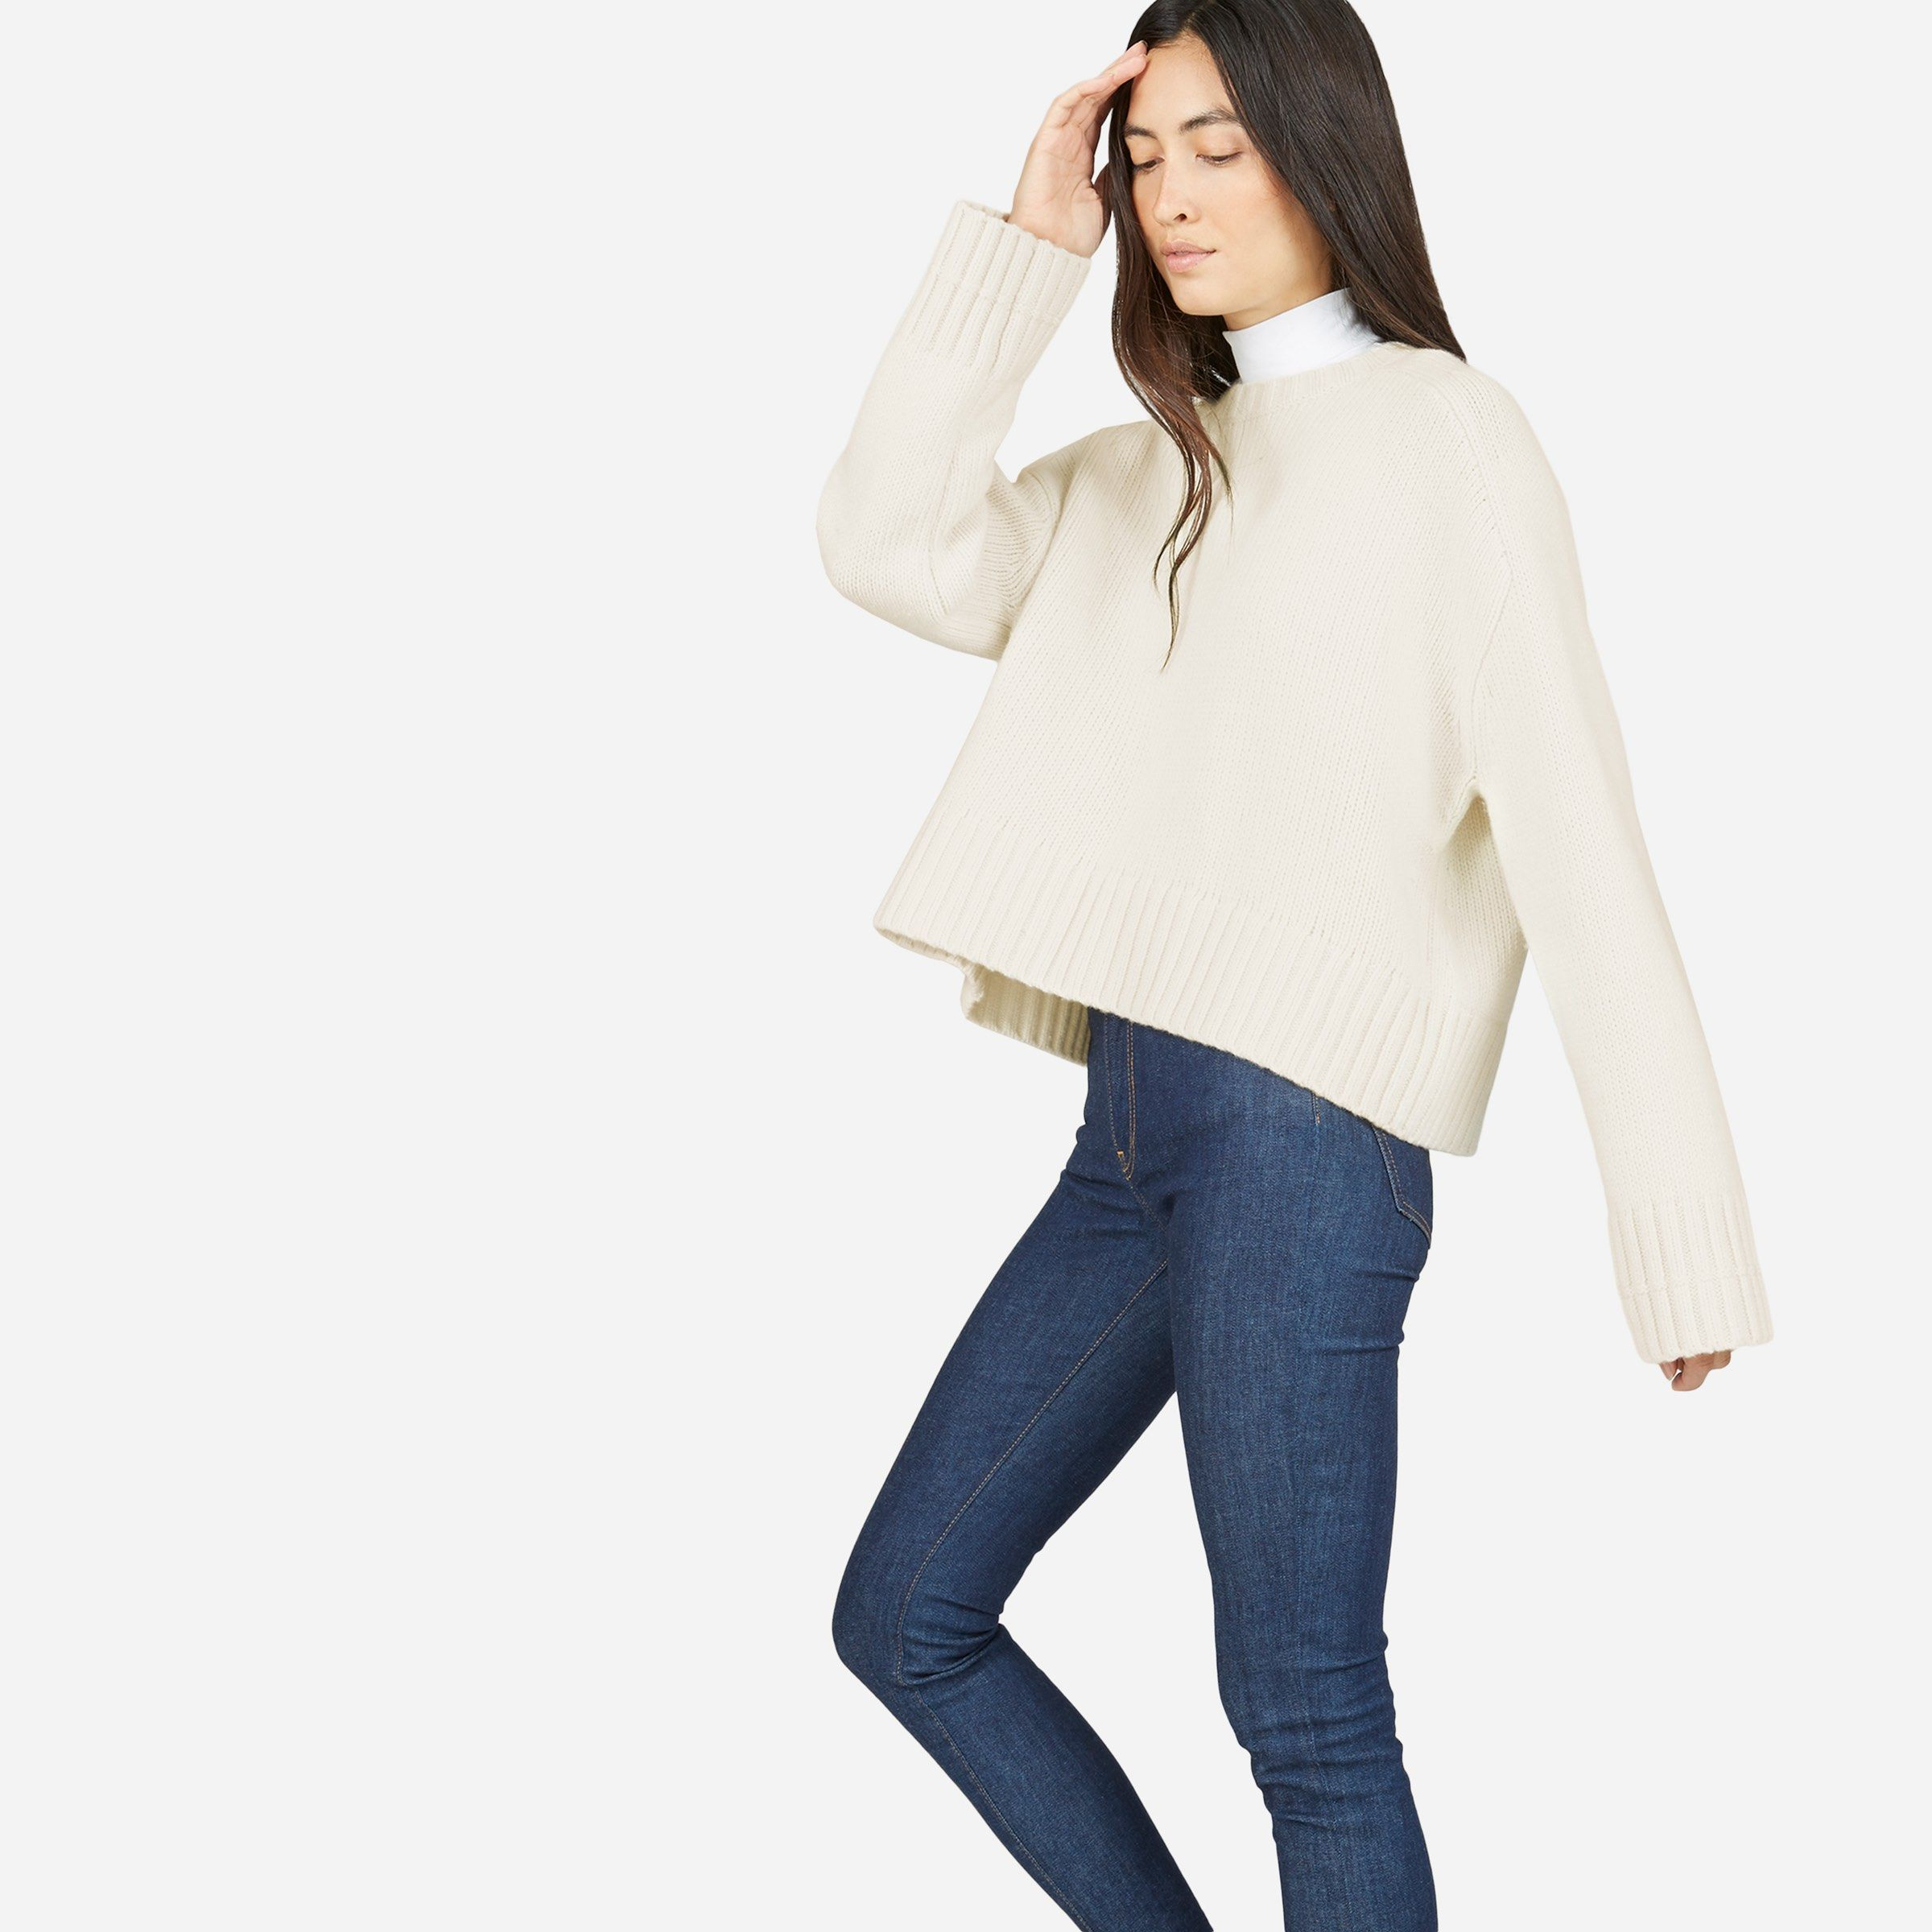 The Wool-Cashmere Square Crew | Products, Women's sweaters and Wool